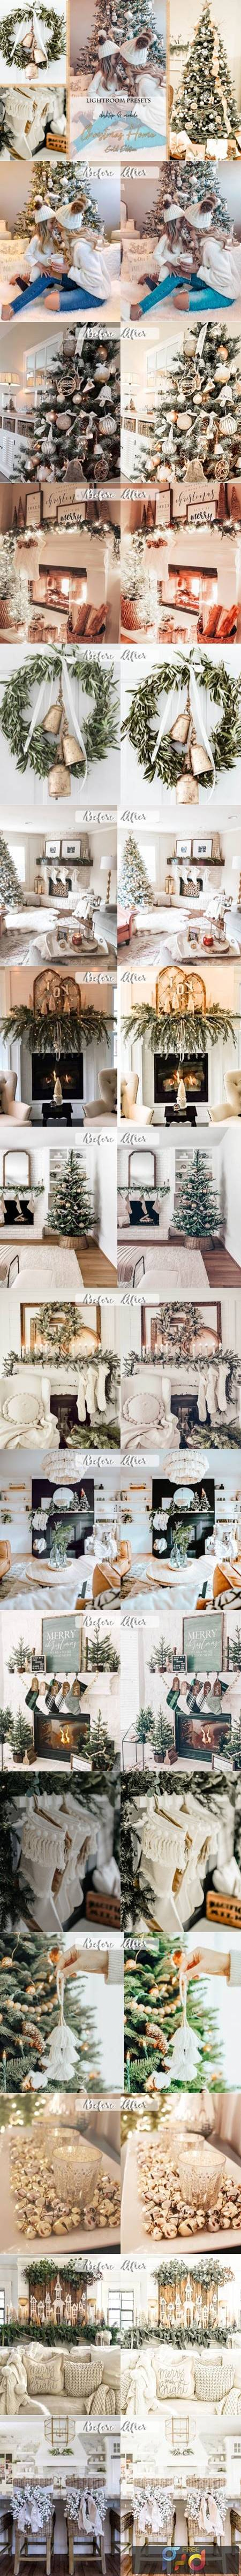 Christmas Home Gold Edition Lightroom Presets 5840749 1